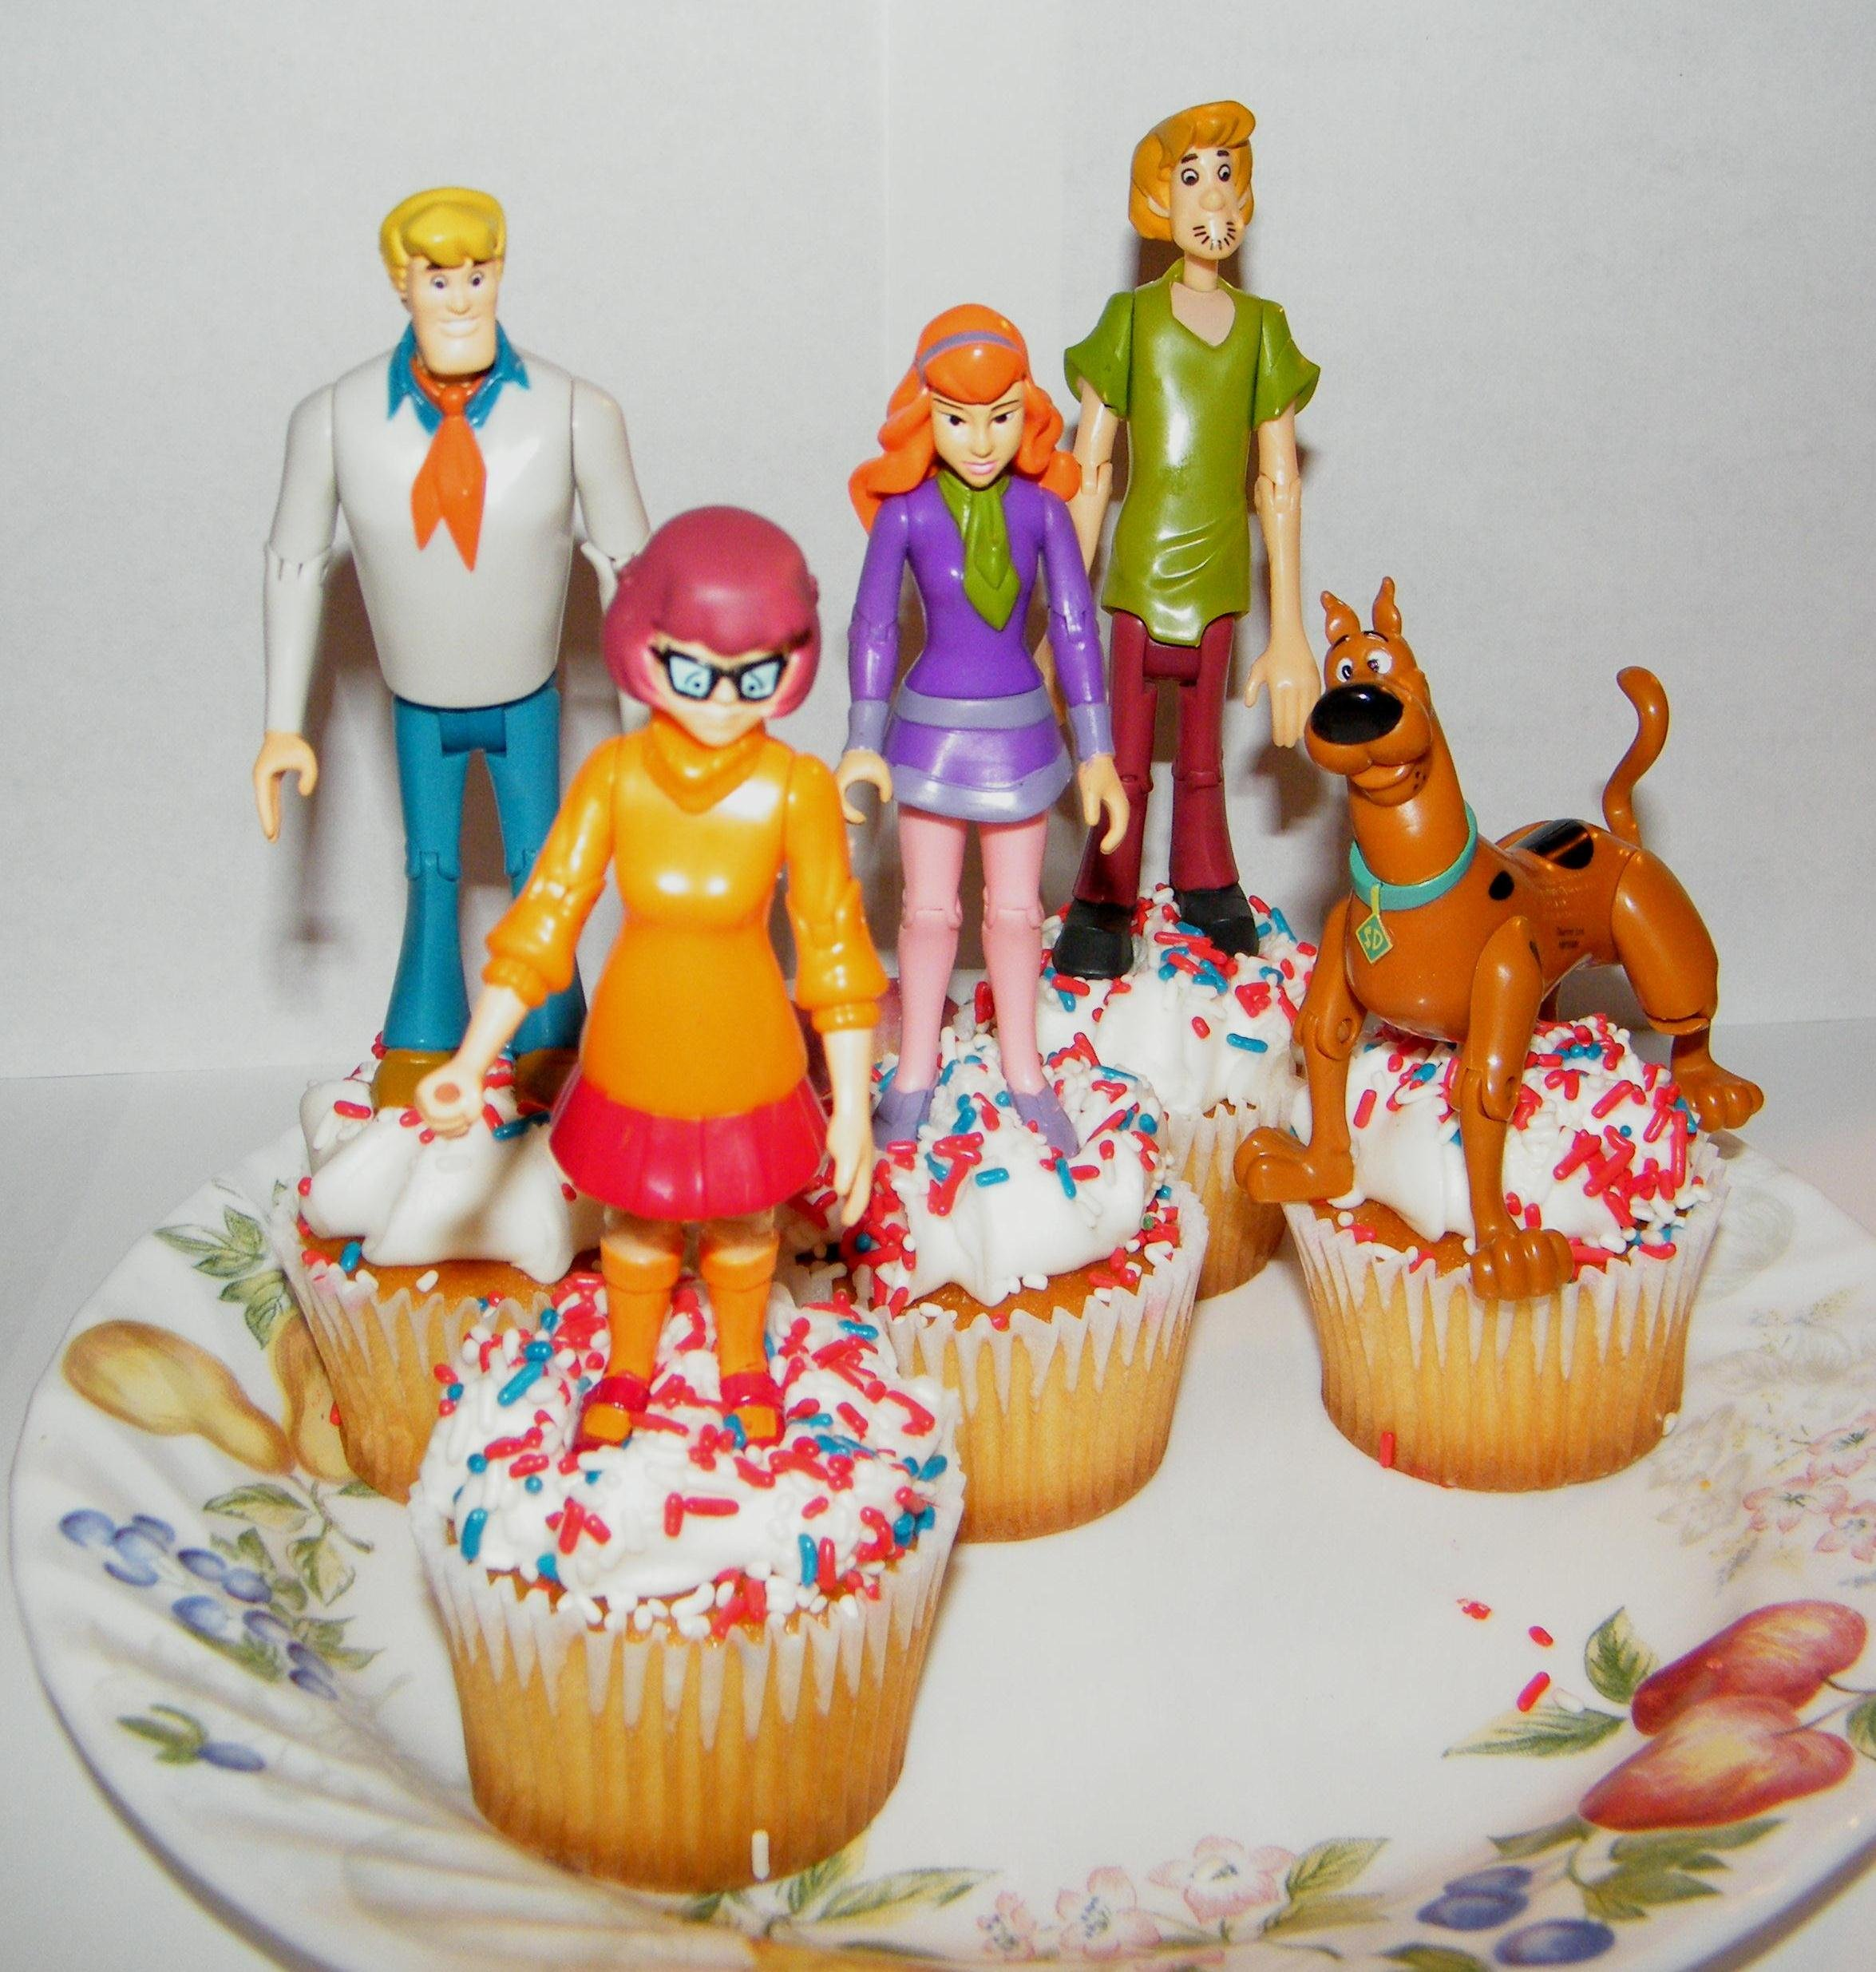 Scooby-Doo and Gang Figure Cake Cupcake Topper Poseable Decoration Set of 5 with Scooby, Shaggy, Fred, Velma and Daphne